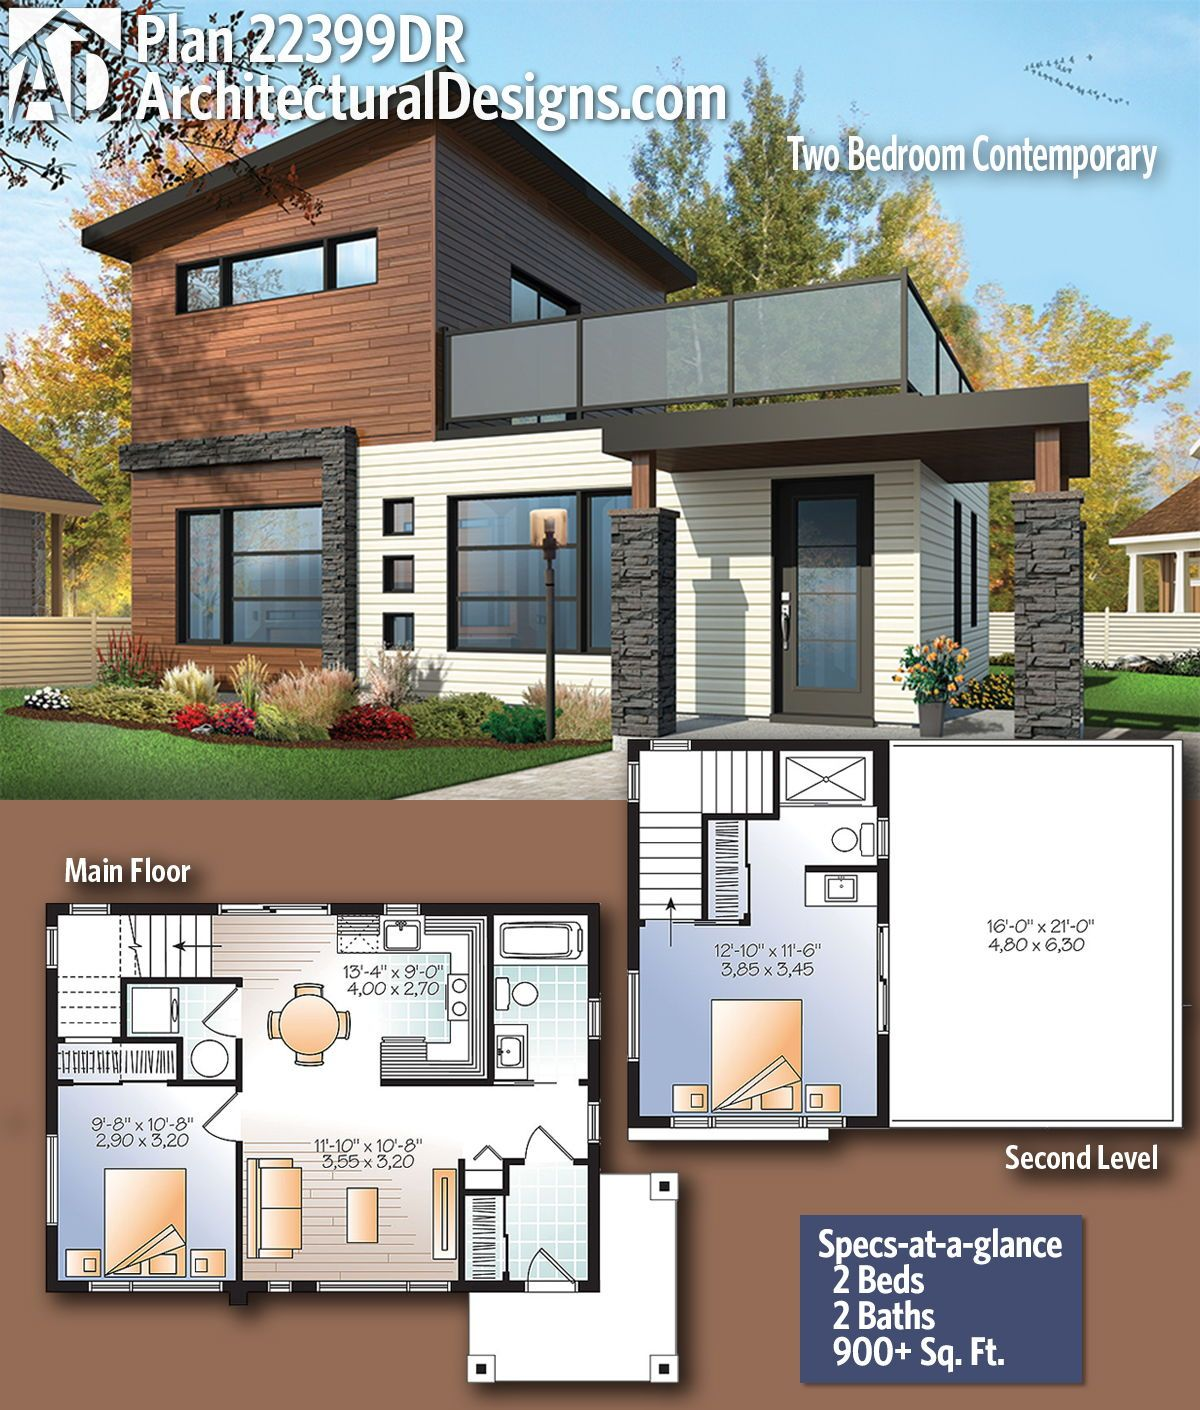 Plan 22399dr Two Bedroom Contemporary Architectural Design House Plans Modern House Plans Small Modern House Plans